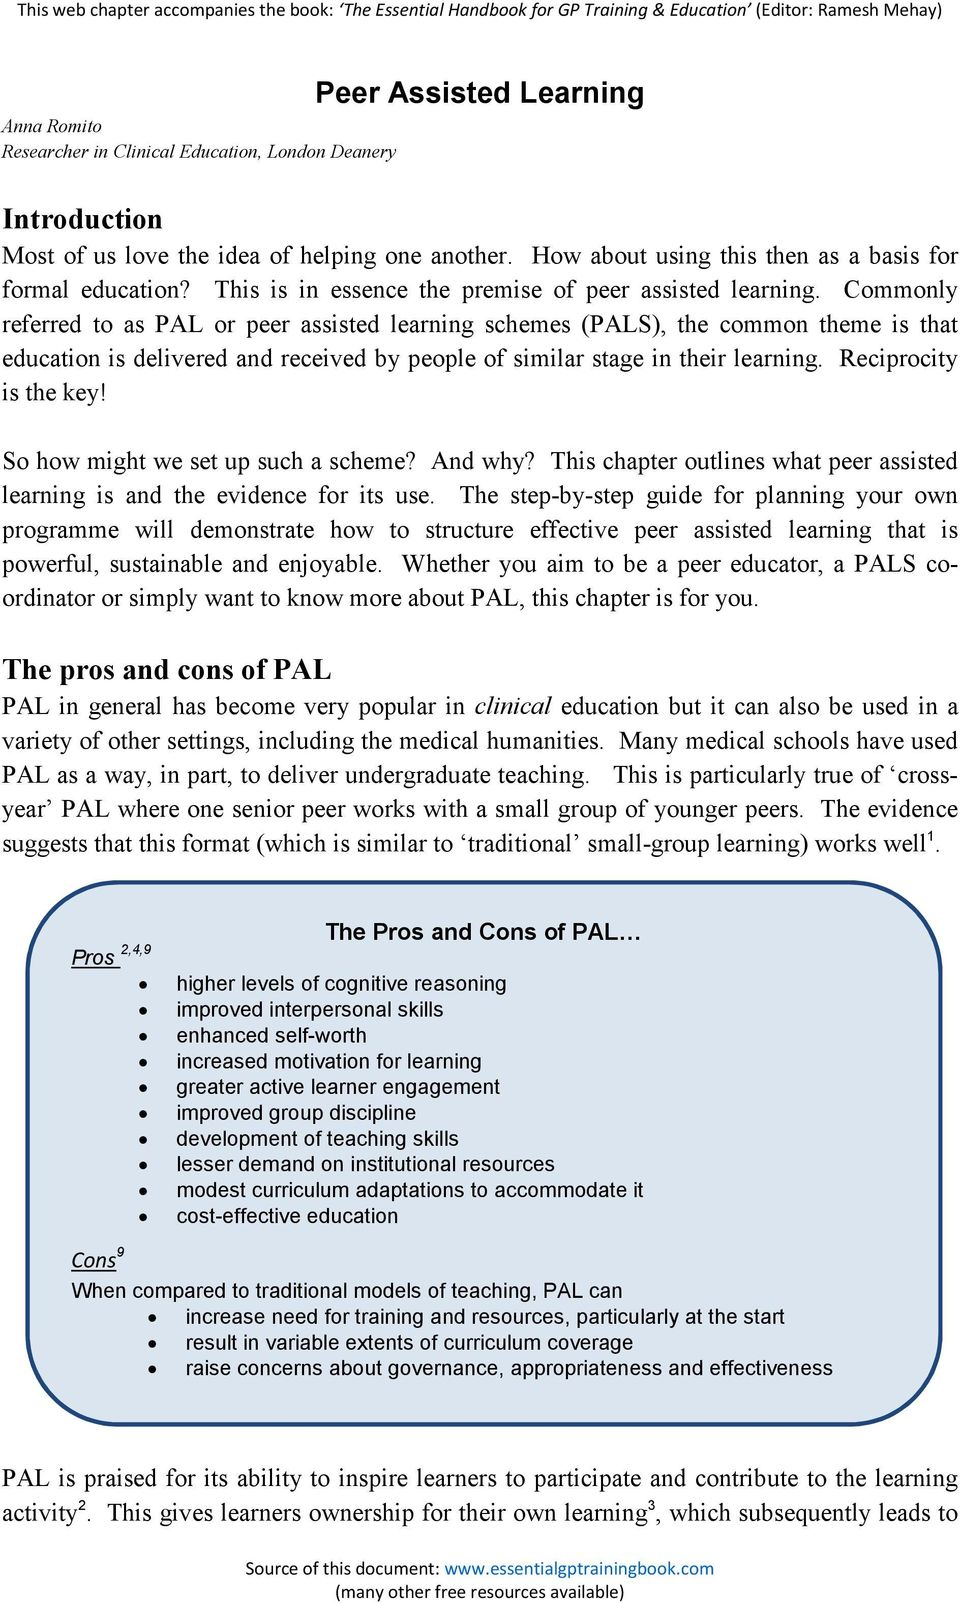 Commonly referred to as PAL or peer assisted learning schemes (PALS), the common theme is that education is delivered and received by people of similar stage in their learning. Reciprocity is the key!